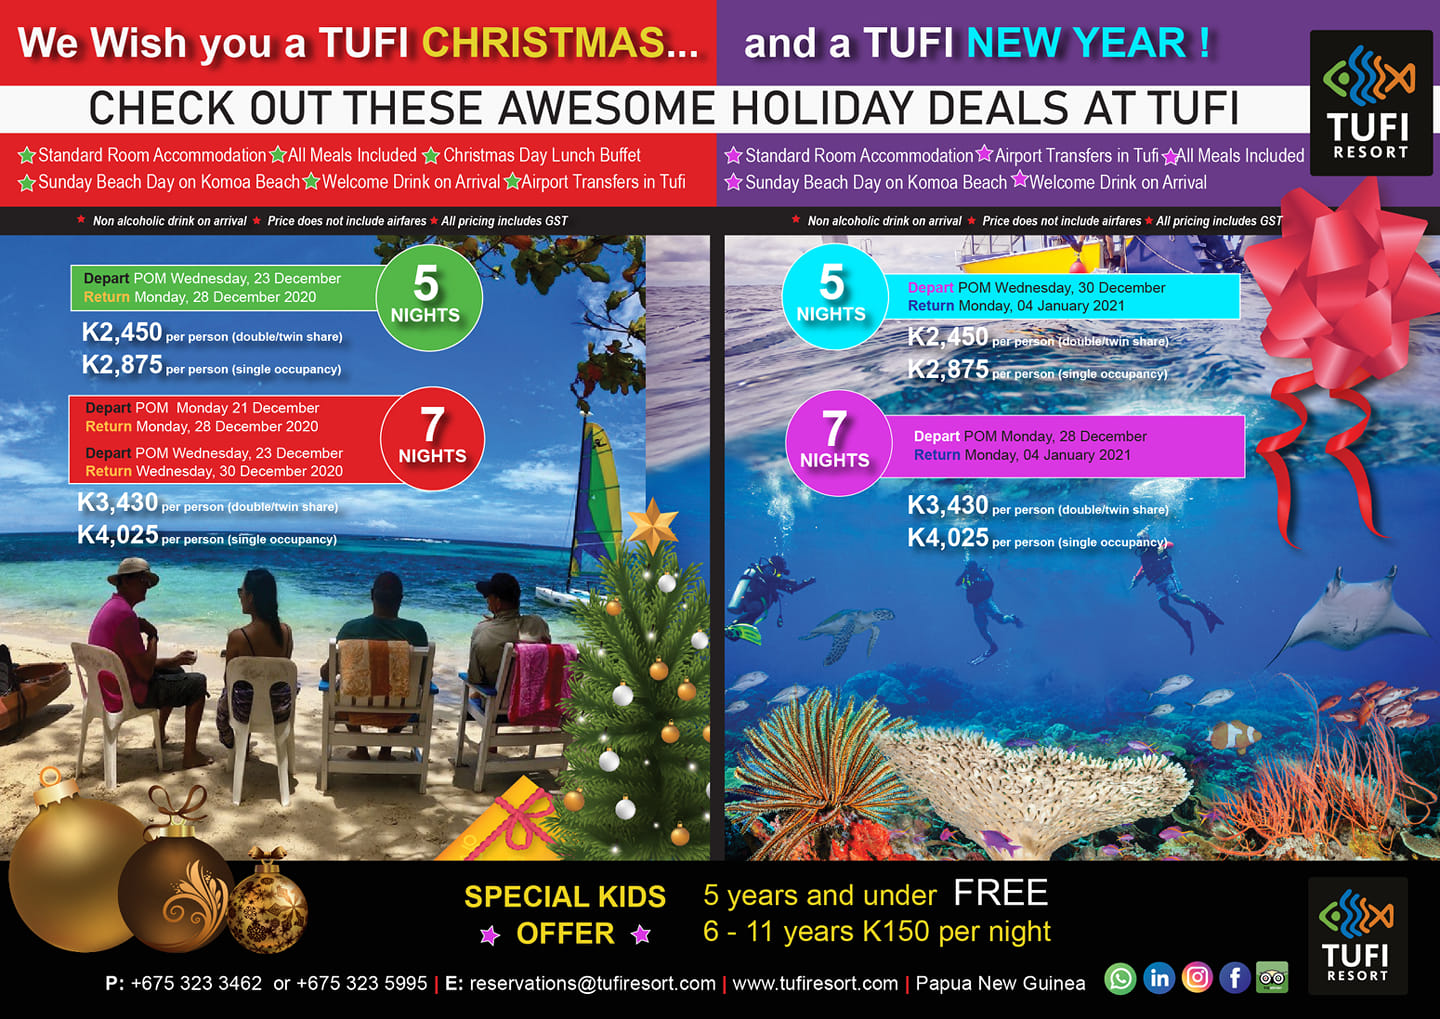 Tufi Christmas and New Year